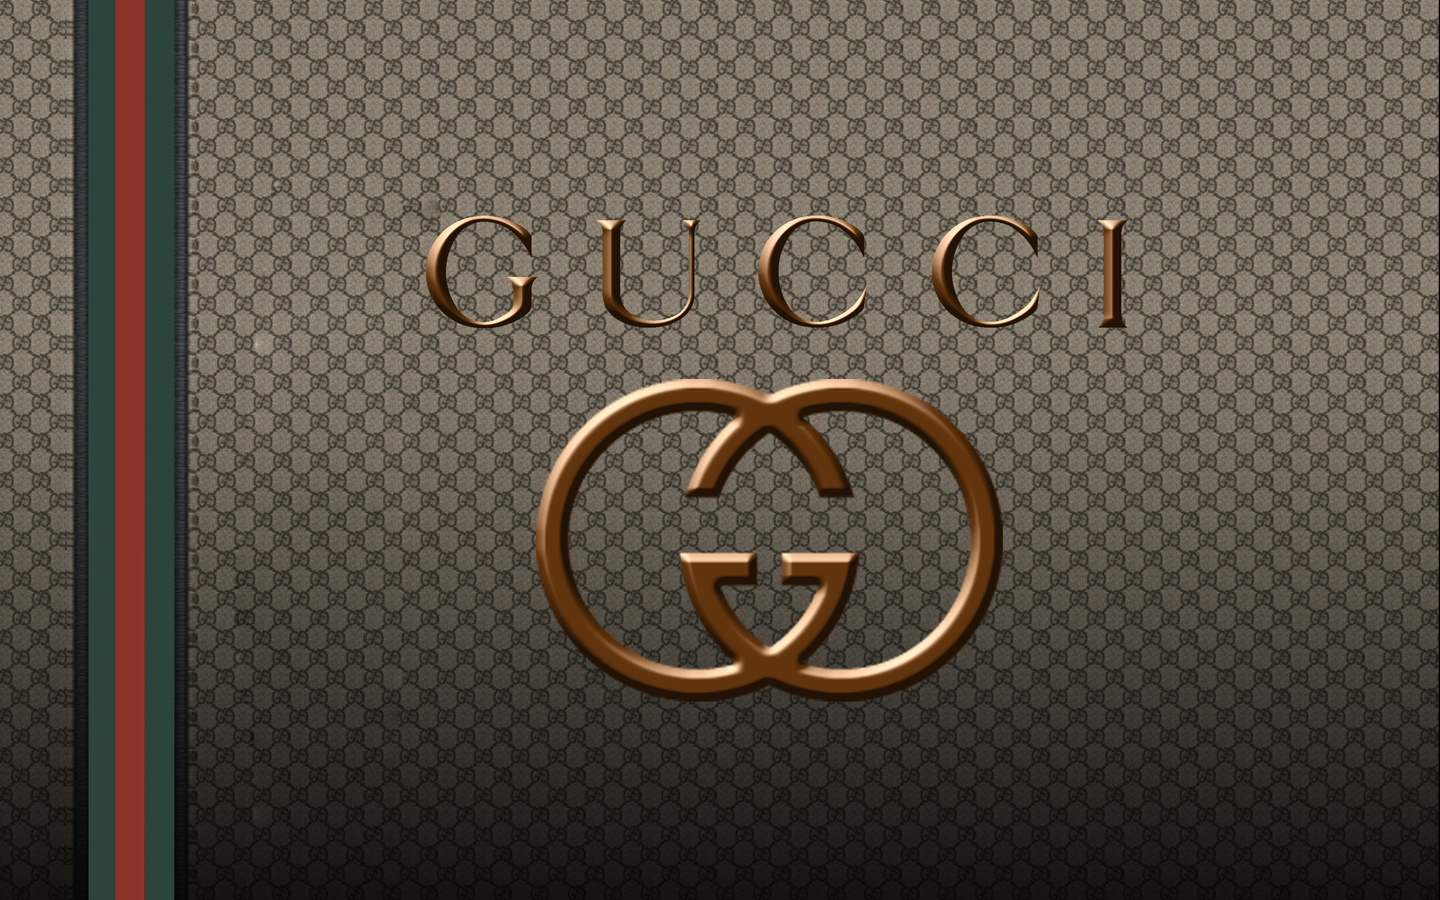 Gucci Design Wallpaper Gucci Design Wallpaper Gucci Pictures to pin on ...